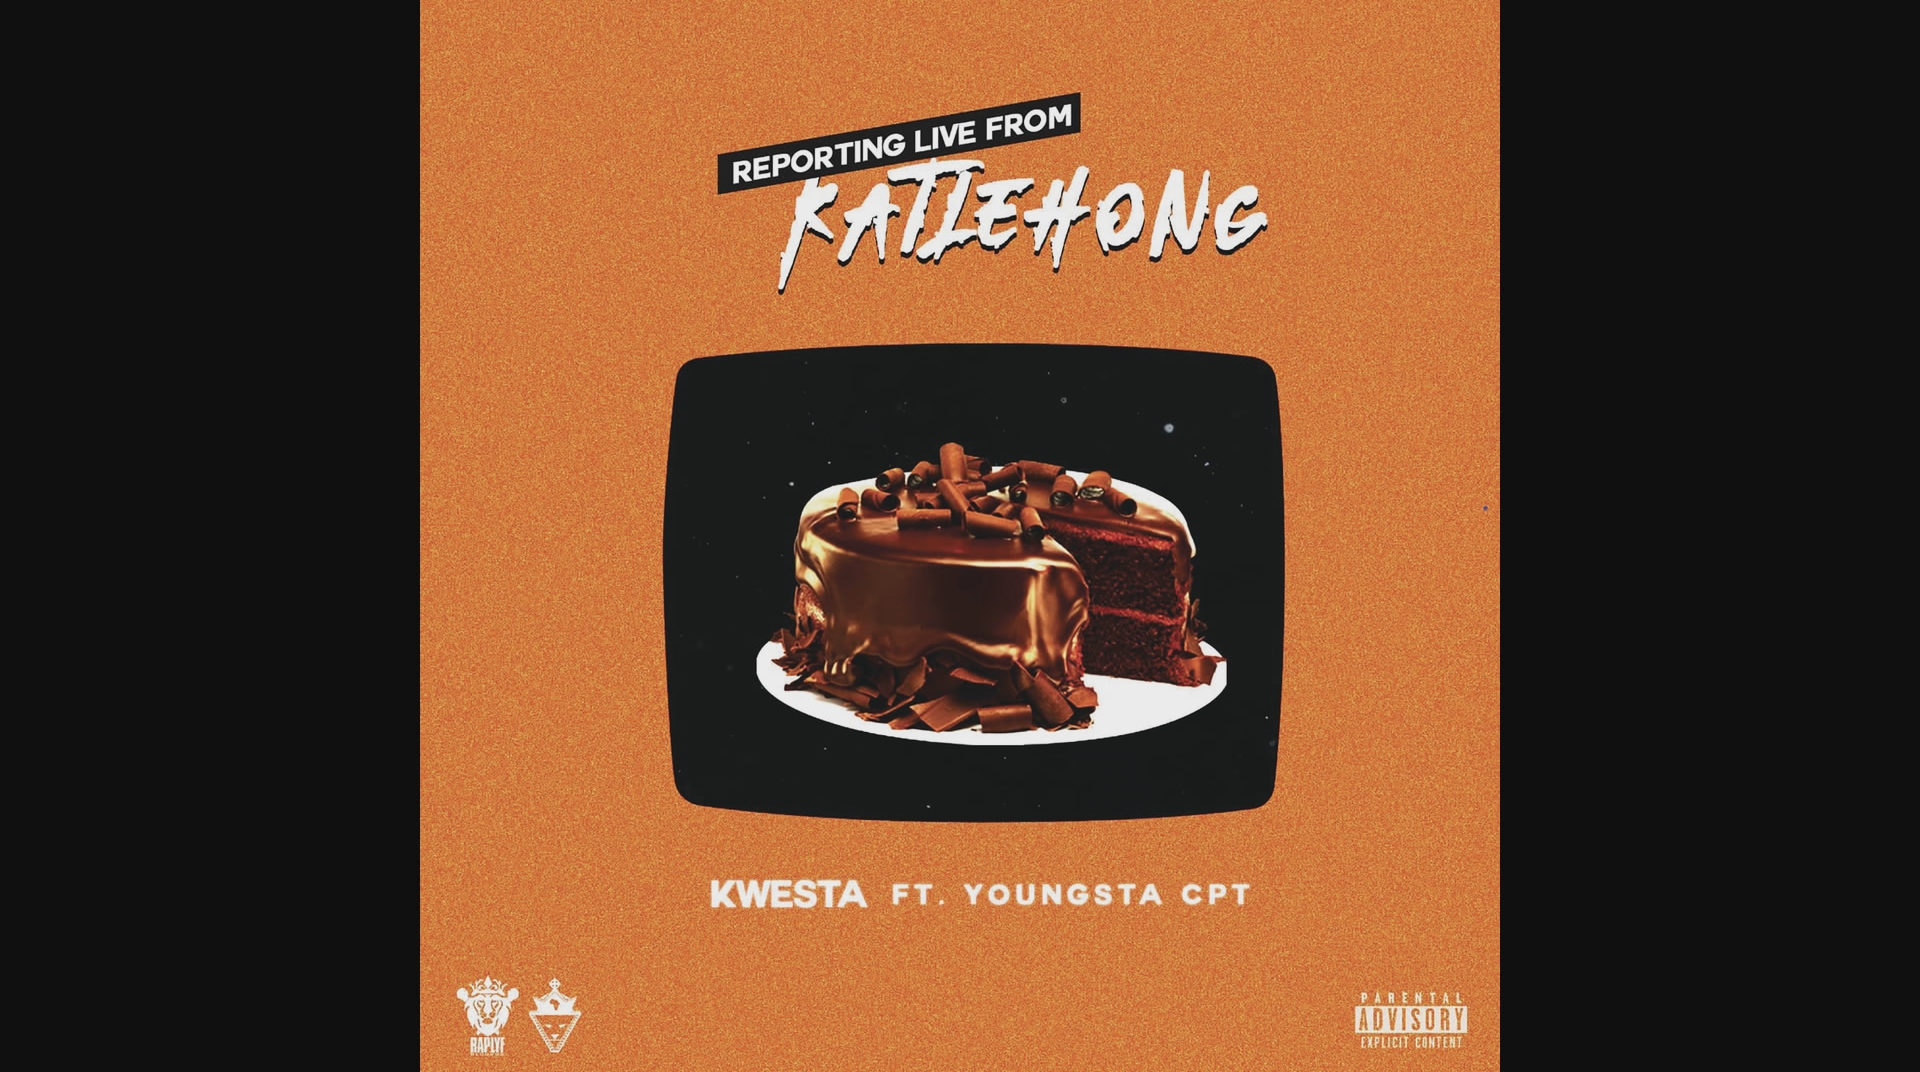 Reporting Live From Katlehong - Kwesta, YoungstaCPT